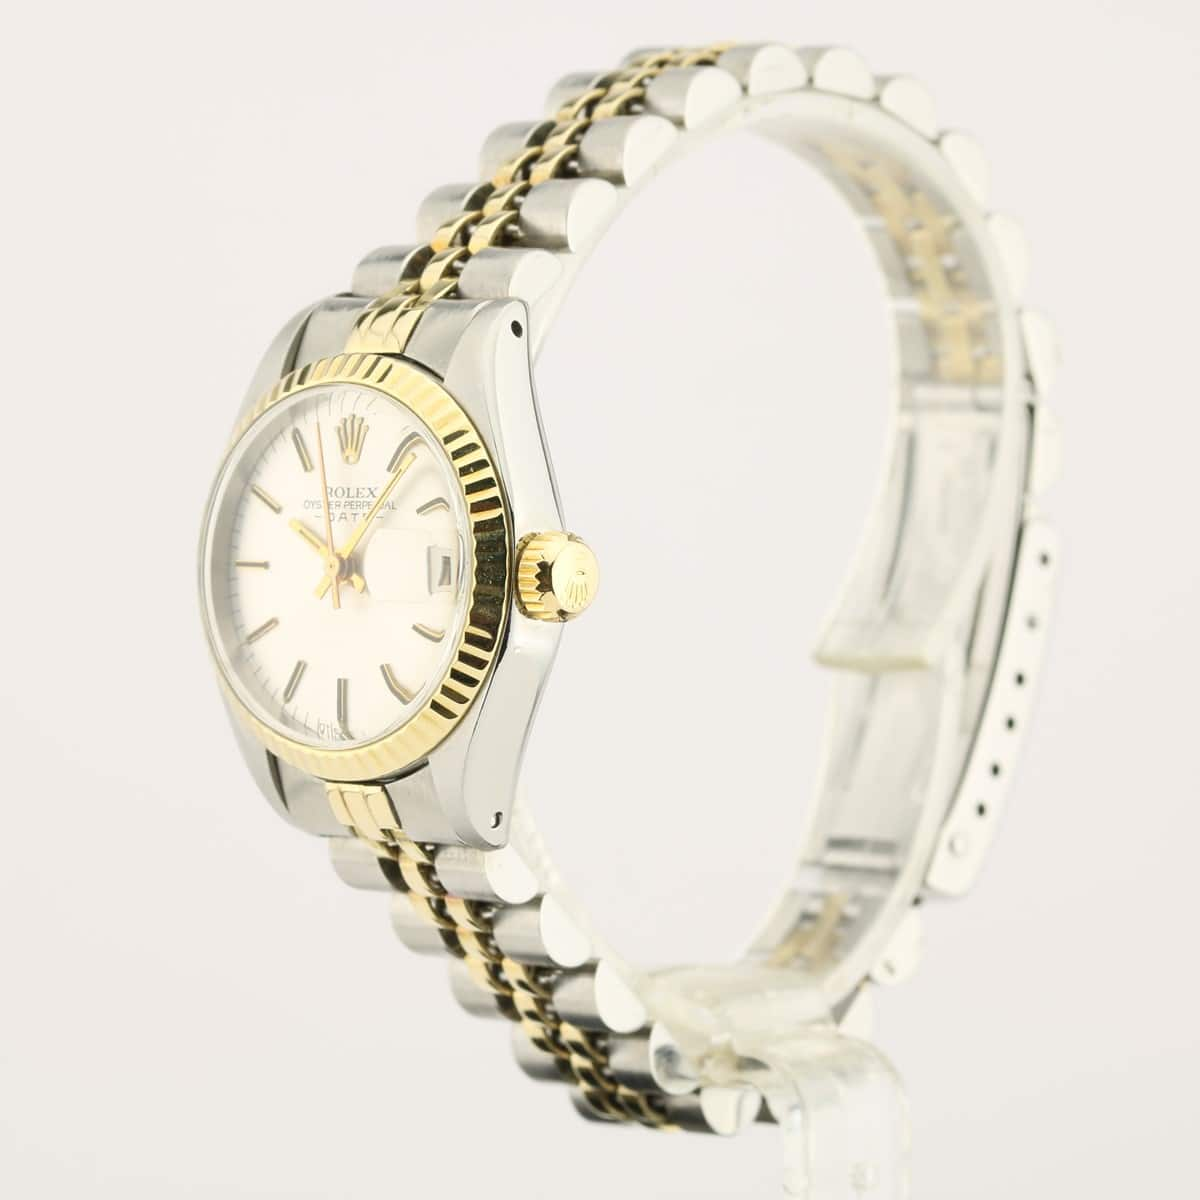 Rolex-Oyster-6917